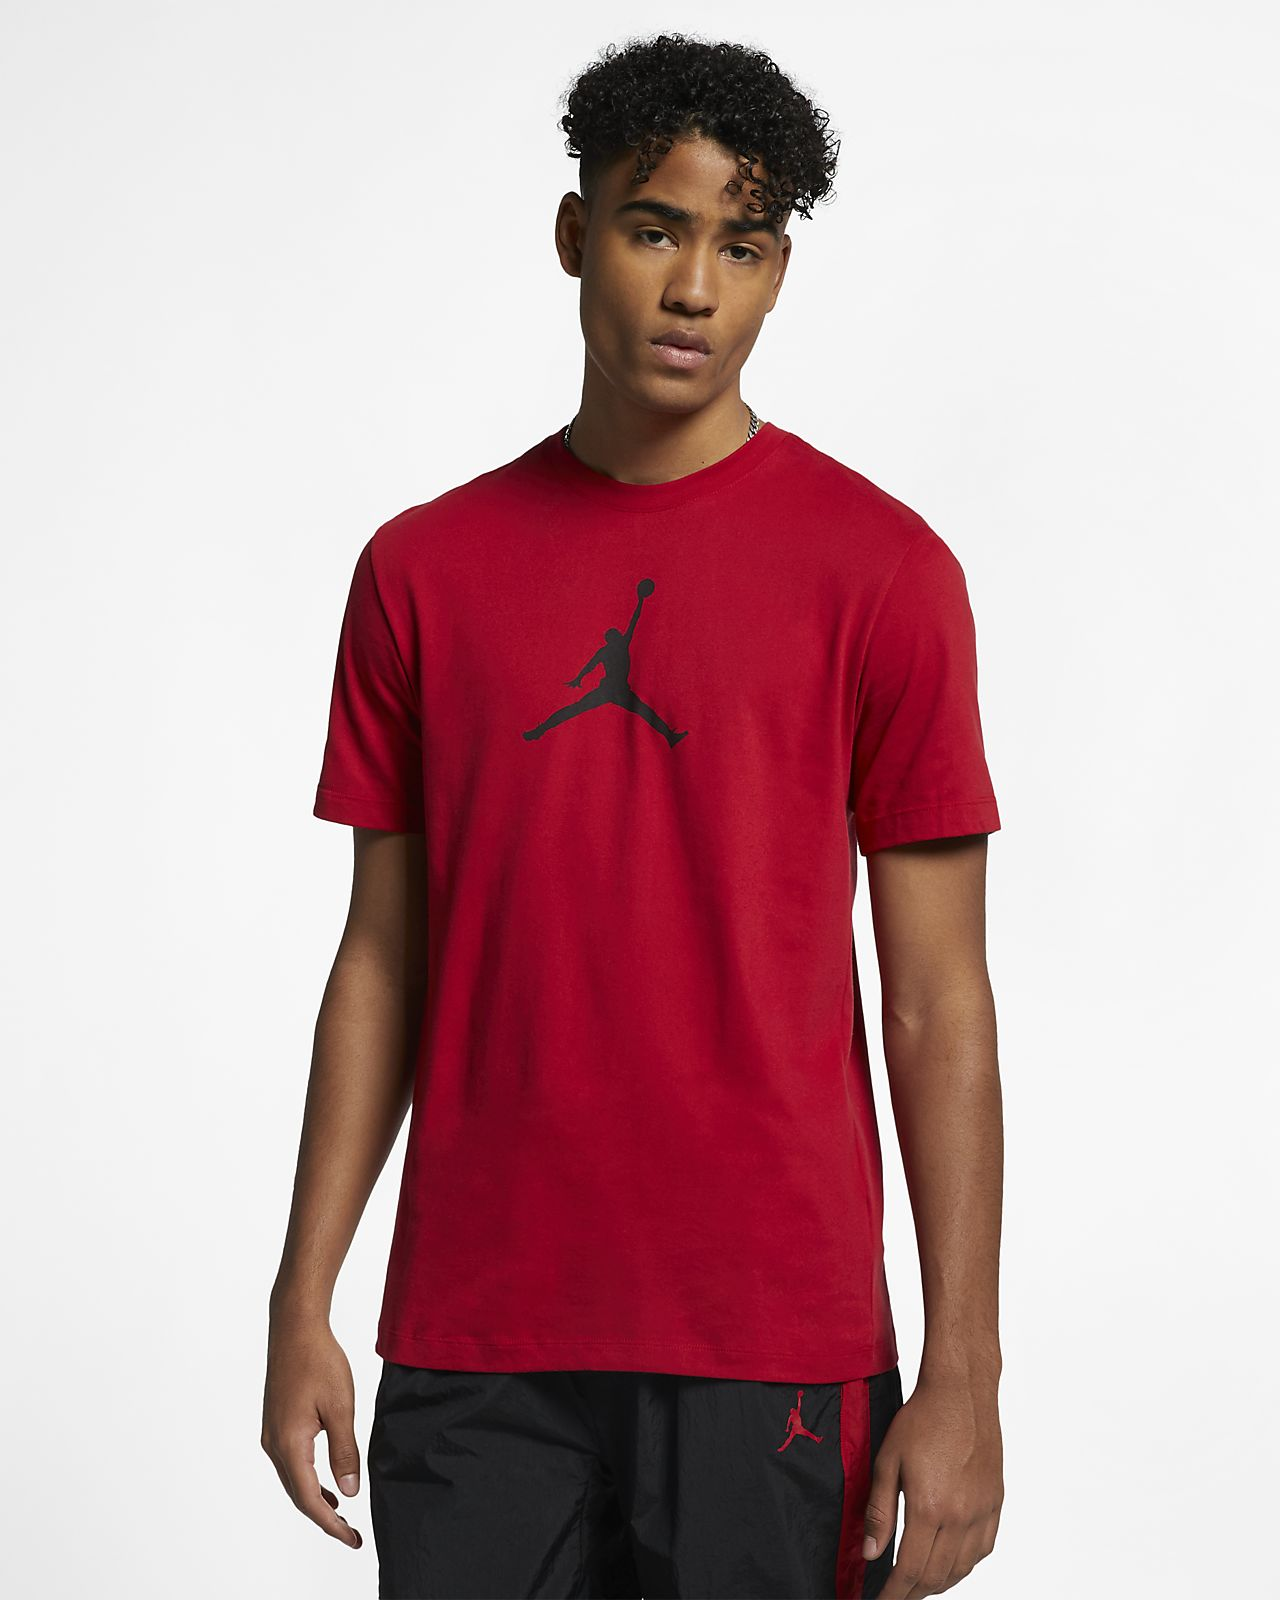 a683ae33b23ed5 Jordan Iconic 23 7 Men s Training T-Shirt. Nike.com IE